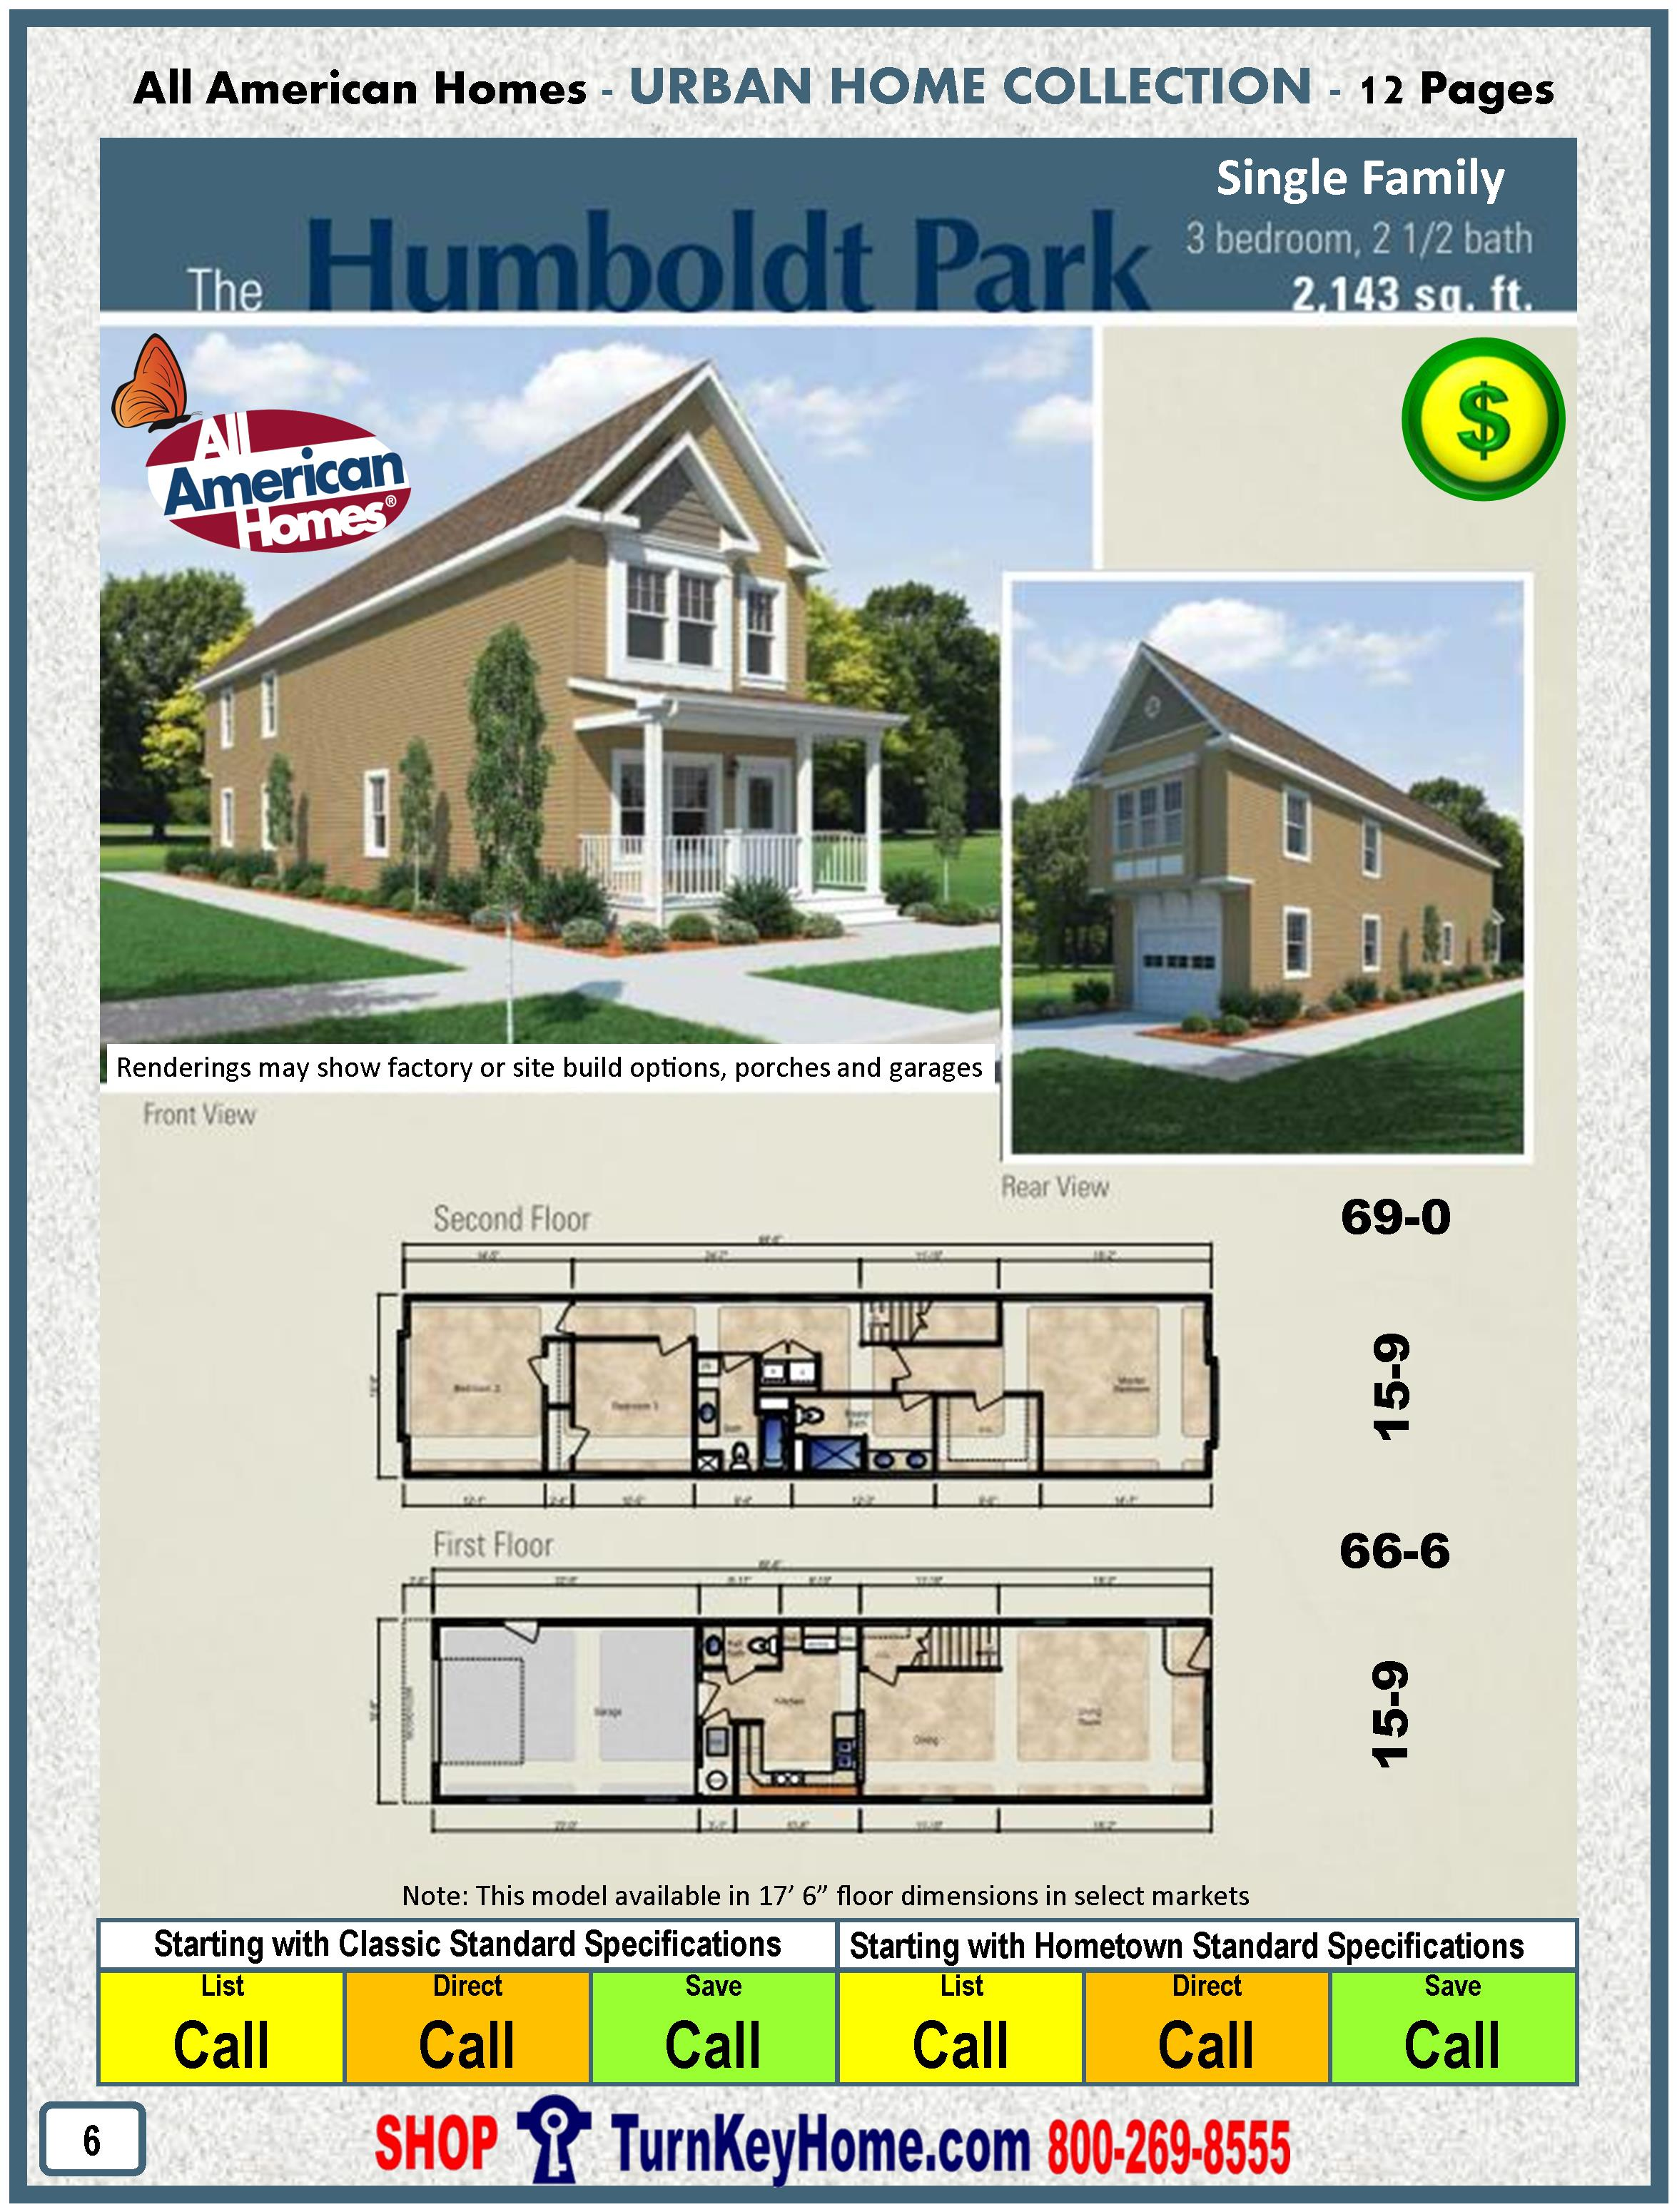 Modular Home All American Homes Urban HUMBOLDT PARK SINGLE FAMILY Plan PriceMORE HERE